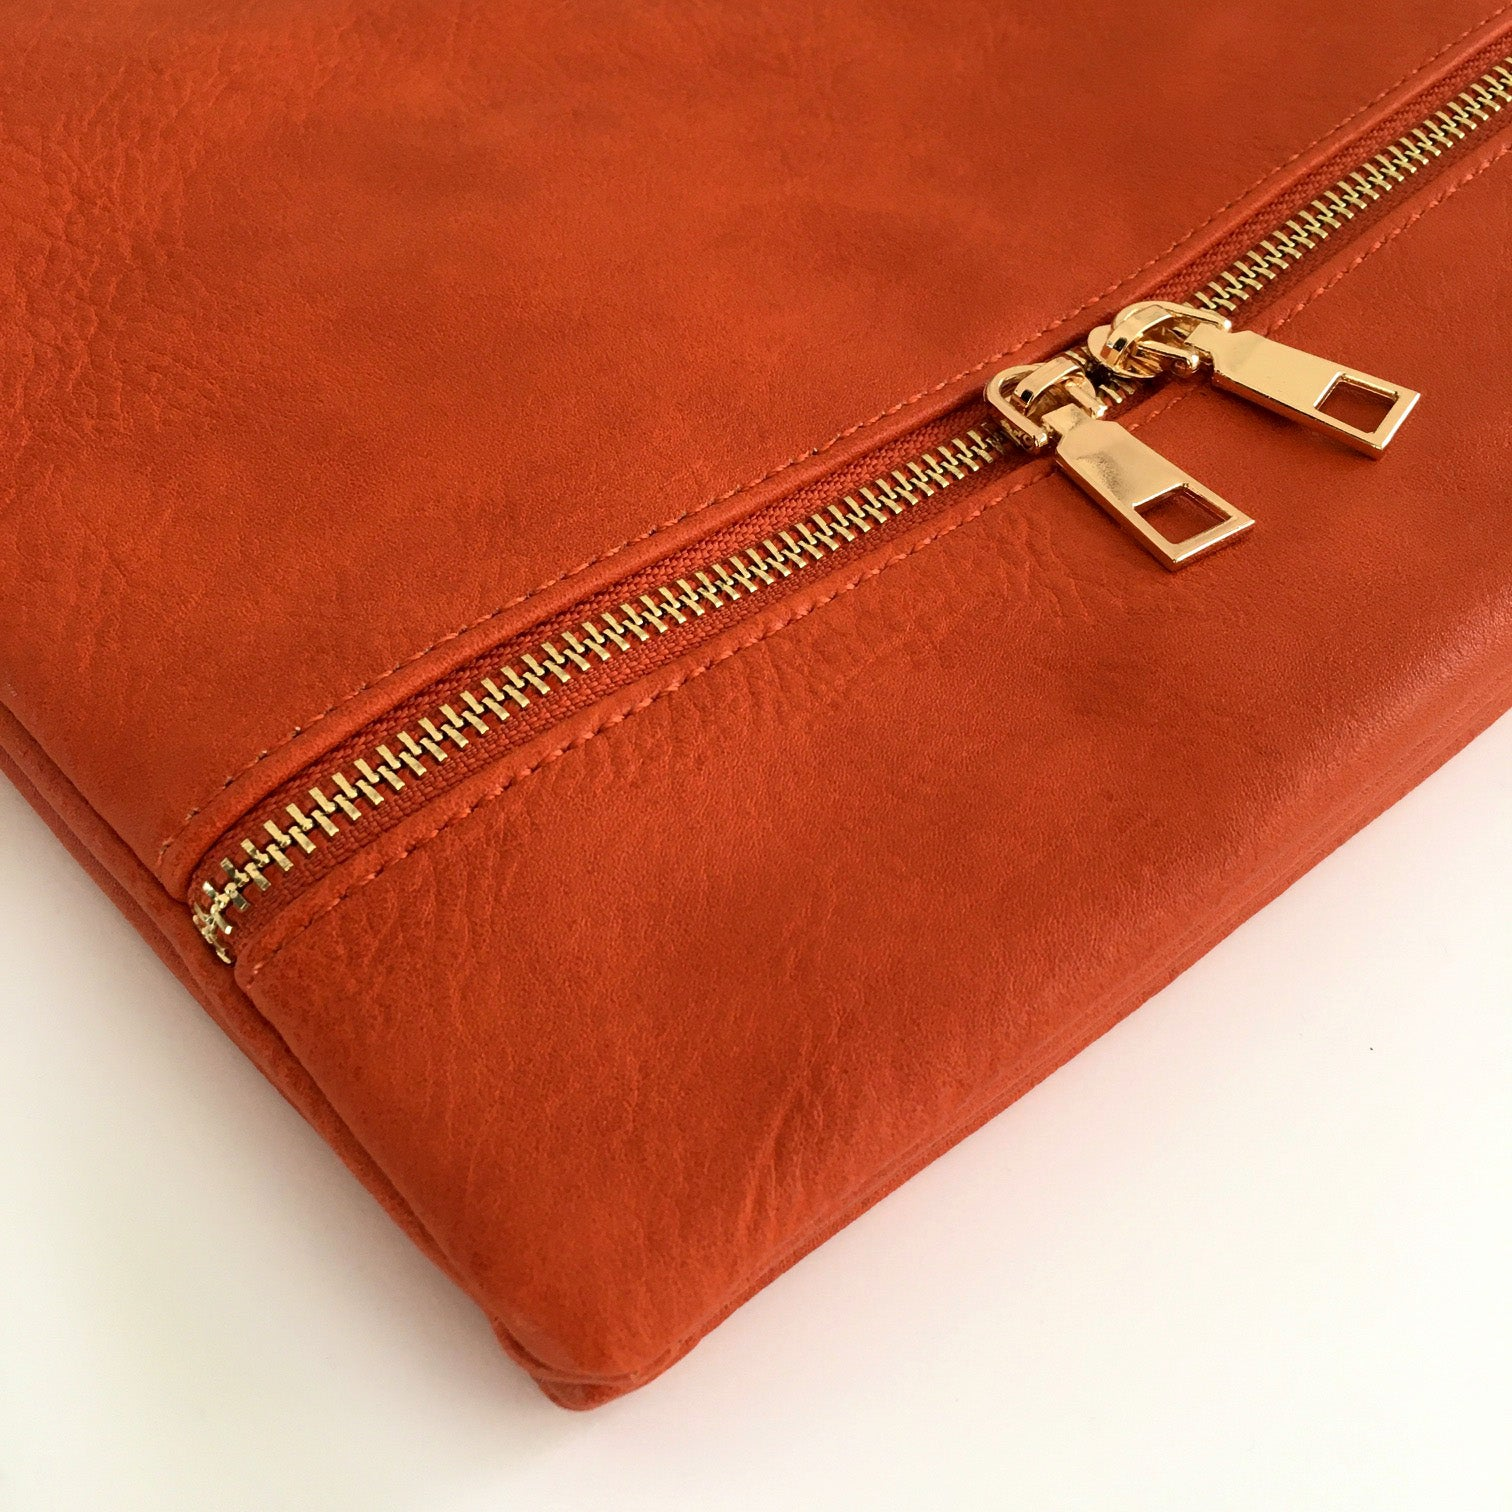 A-SHU ORANGE MULTI COMPARTMENT OVER SHOULDER CROSS BODY BAG - A-SHU.CO.UK